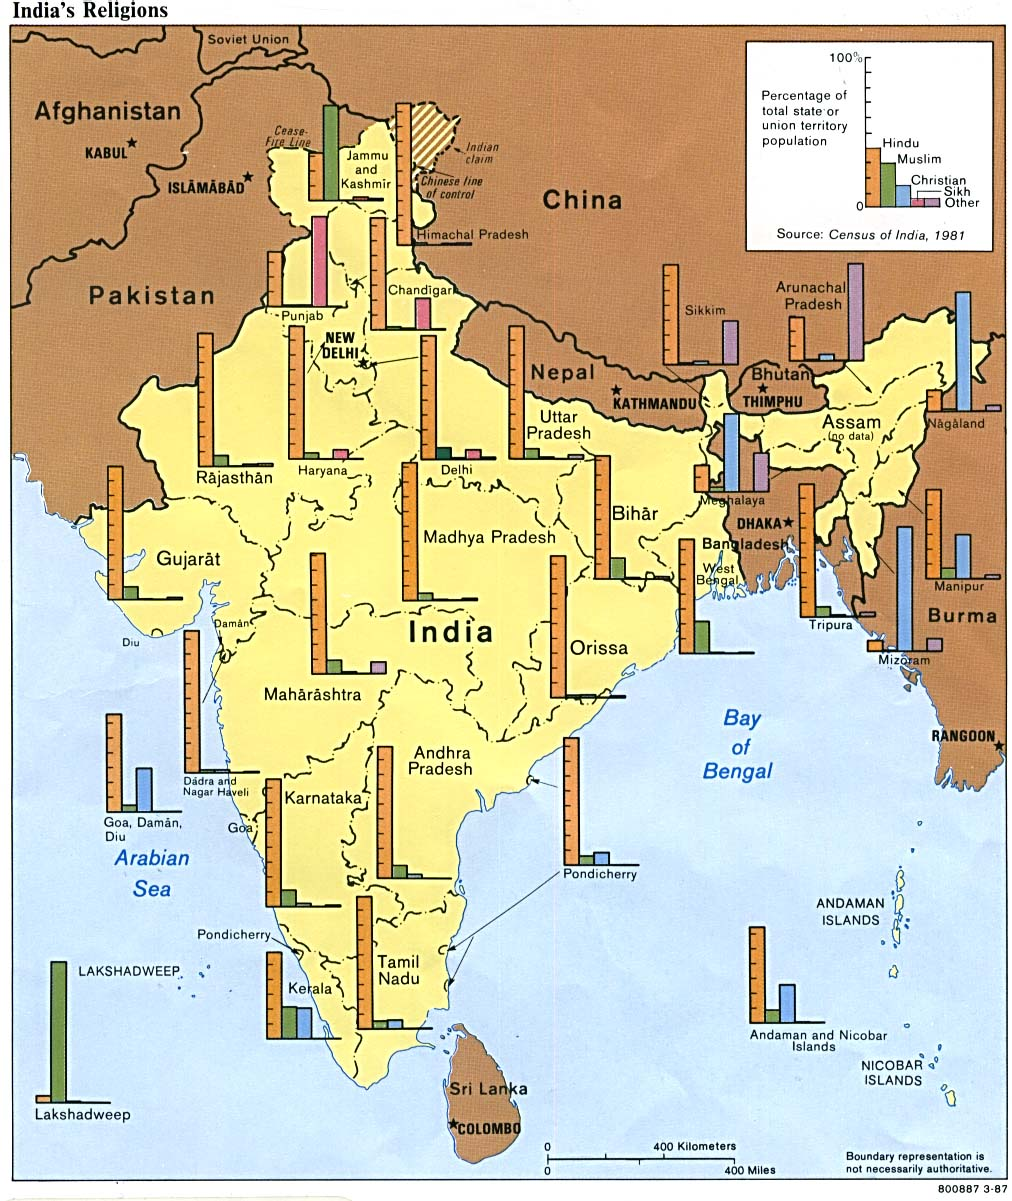 Helpinfo mapmap indiaindia map poinitng with riversmap google mapmap indiaindia map poinitng with riversmap googlemap india states gumiabroncs Gallery